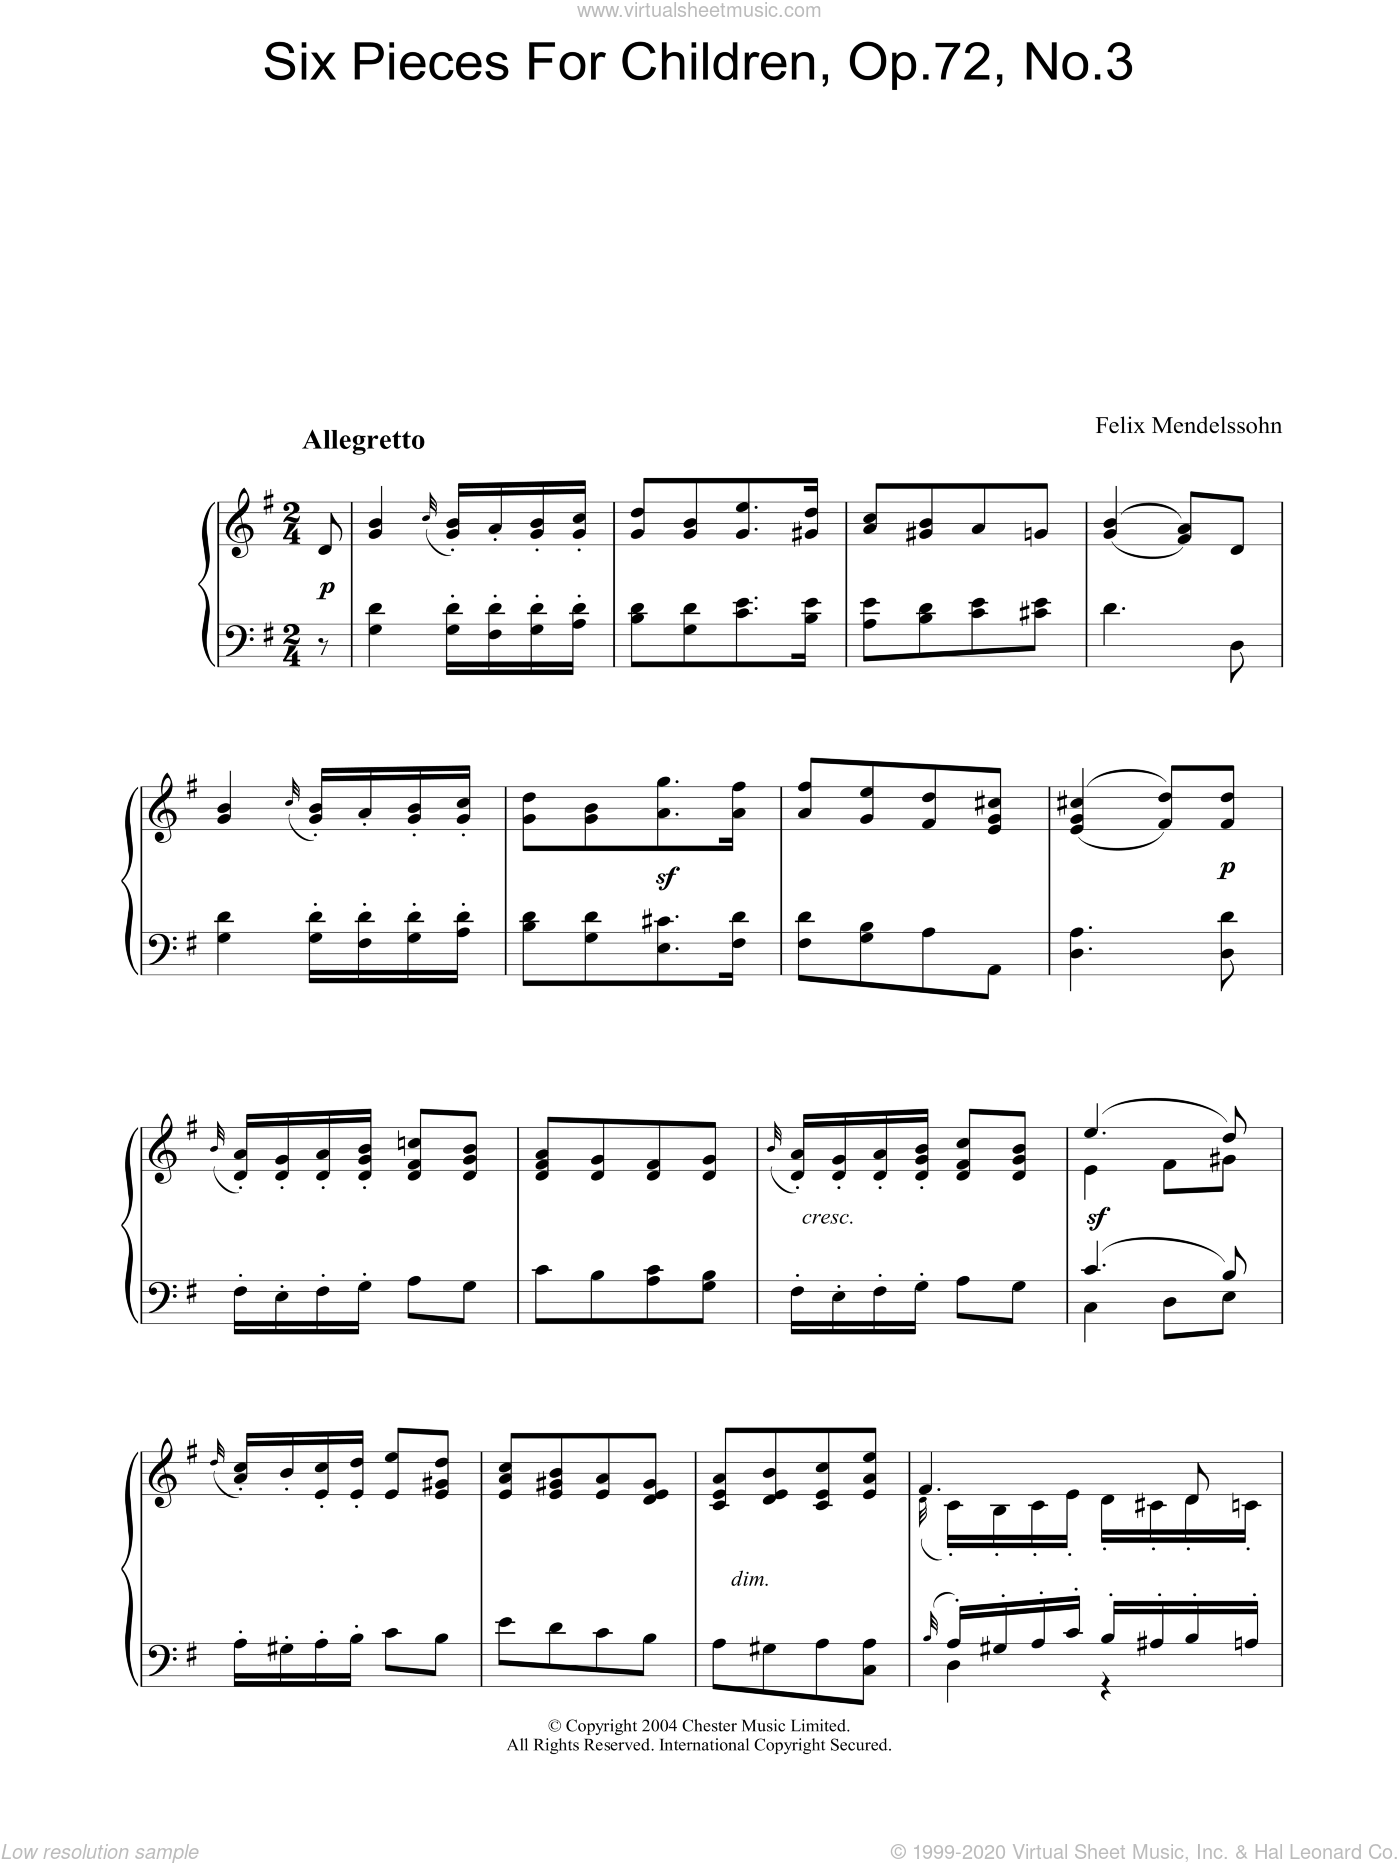 Six Pieces For Children, Op.72, No.3 sheet music for piano solo by Felix Mendelssohn-Bartholdy, classical score, intermediate skill level